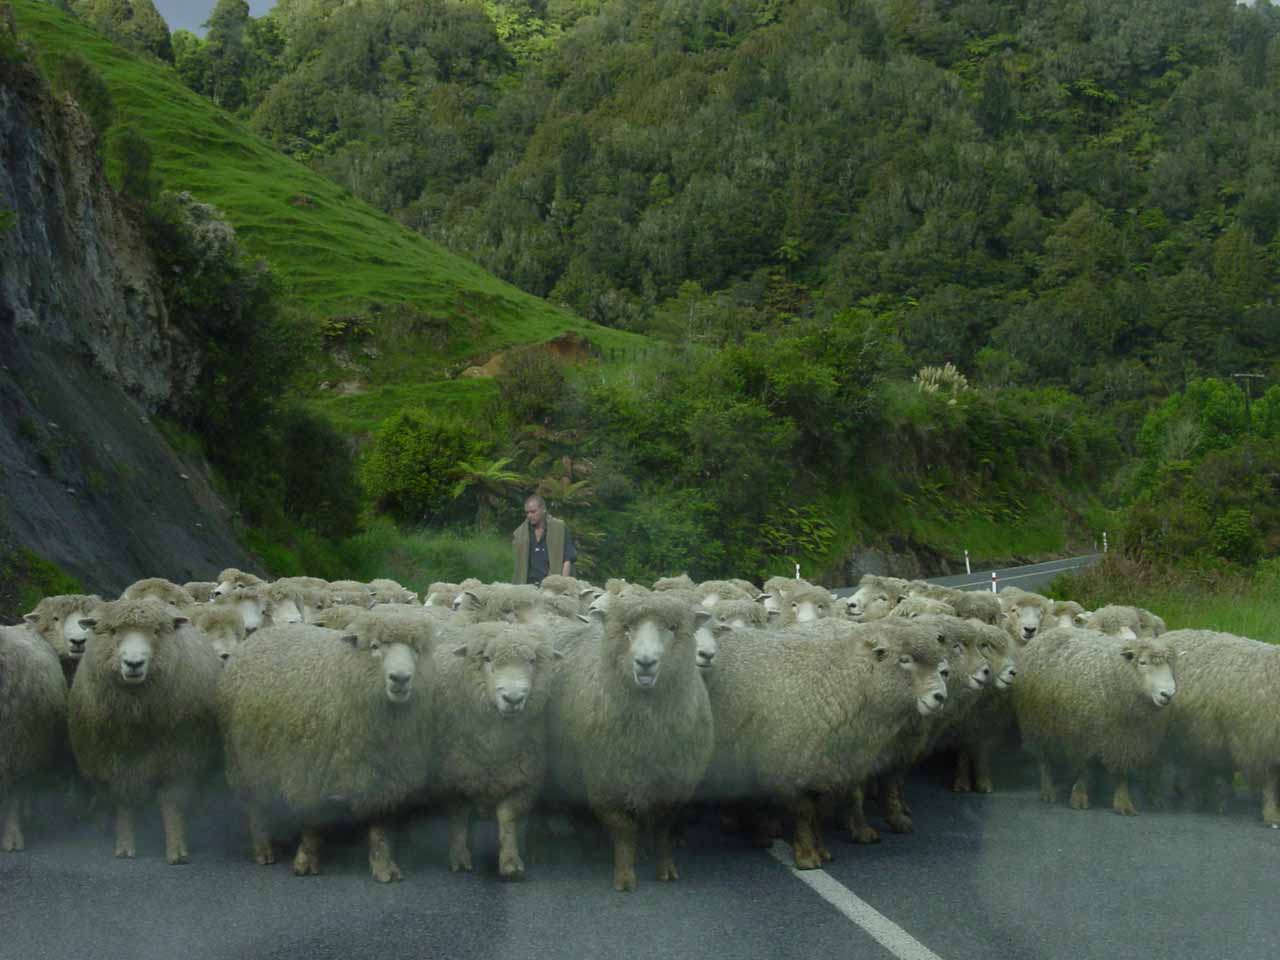 The sheep moved closer to us as we let them go by